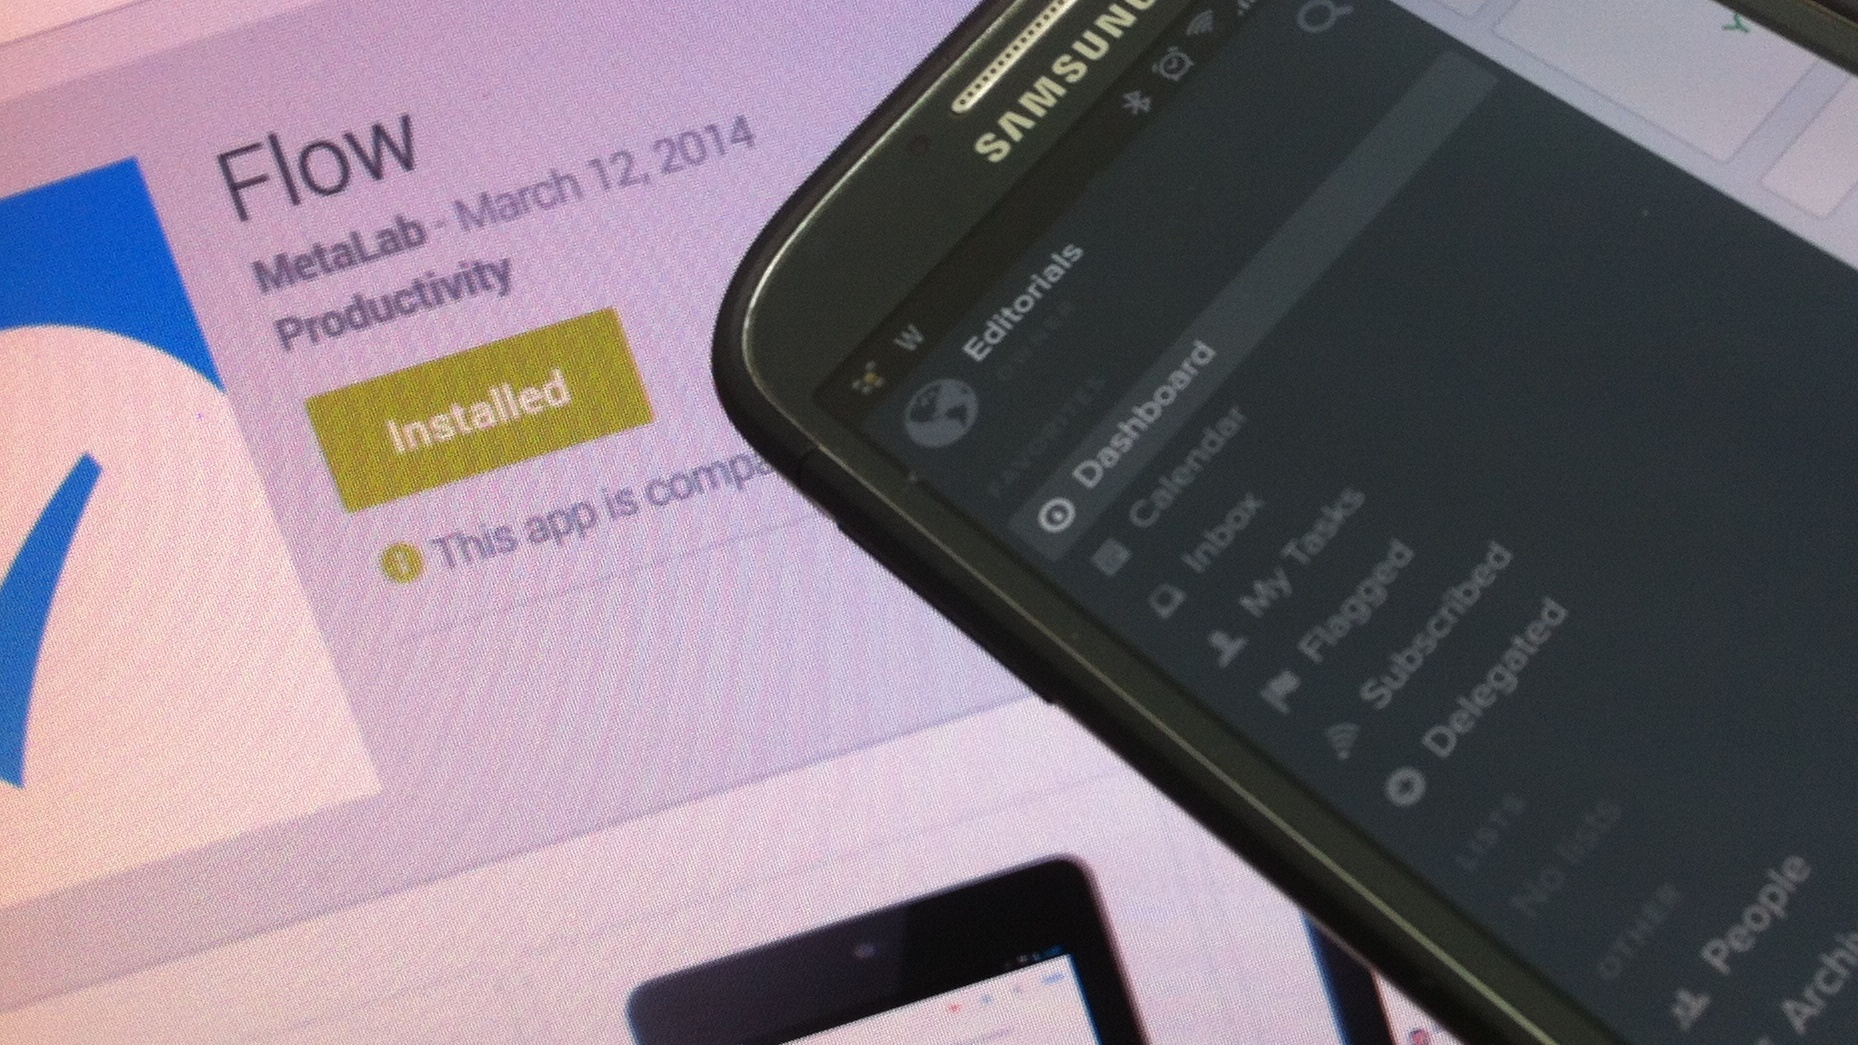 Flow brings its beautiful team task-management tool to Android